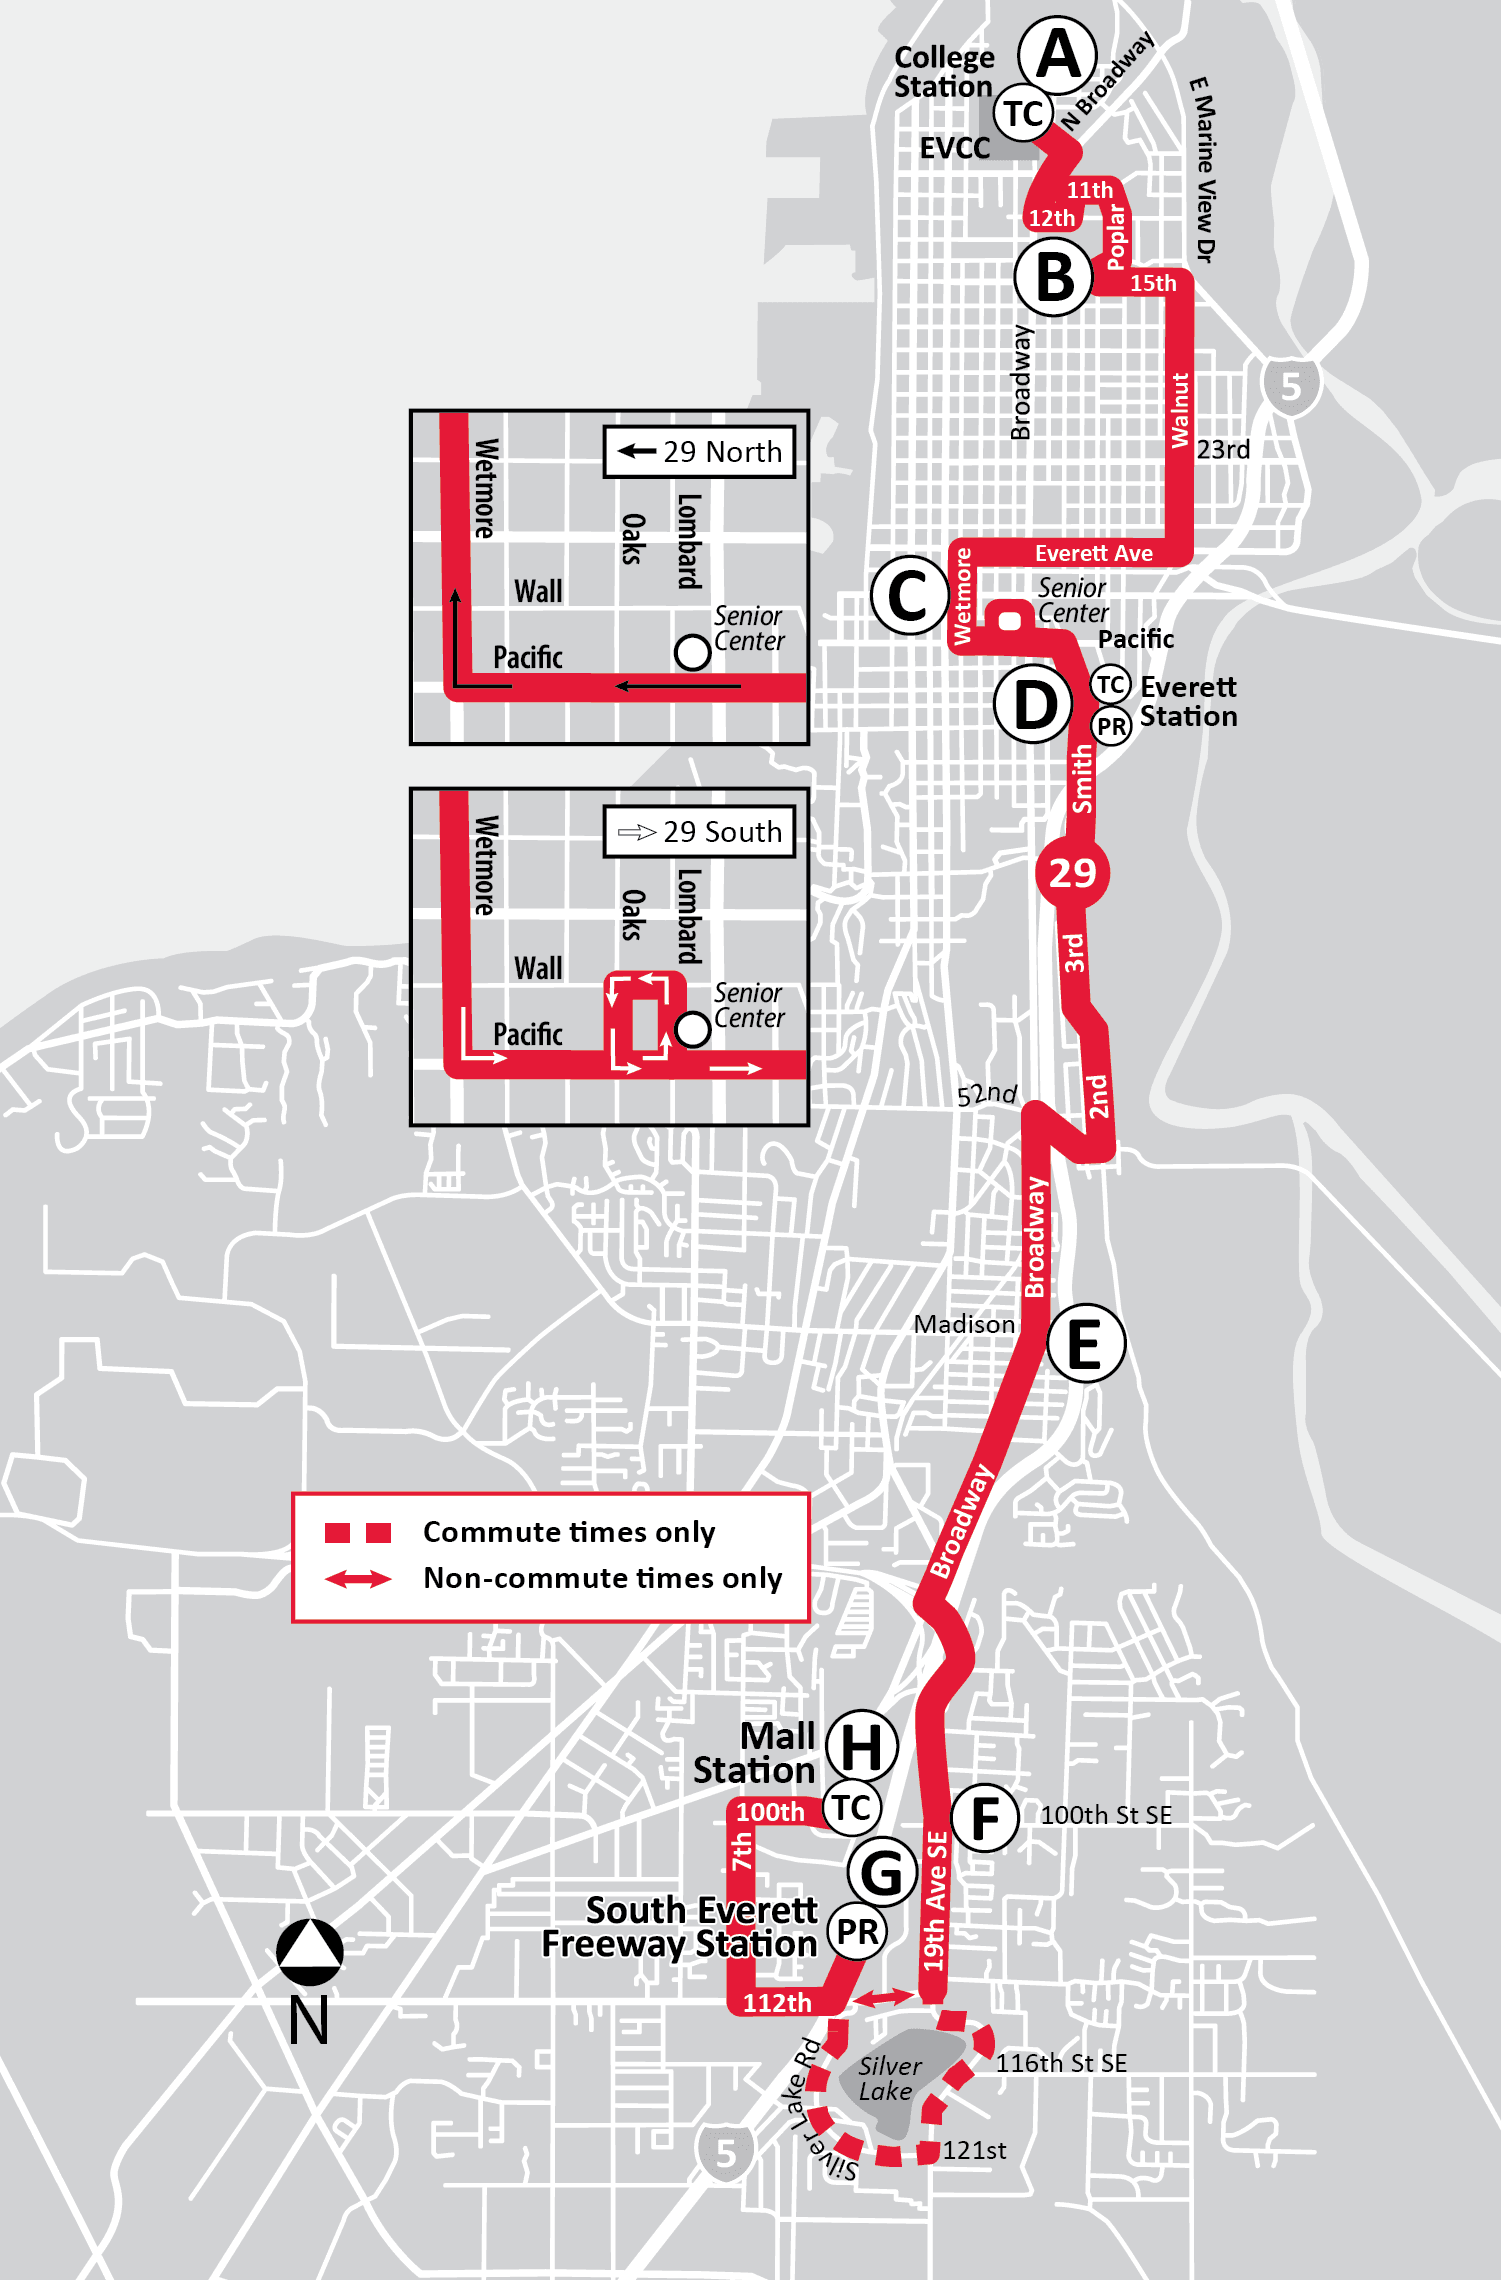 Route 29: S to Mall Station & N to College Station | Everett